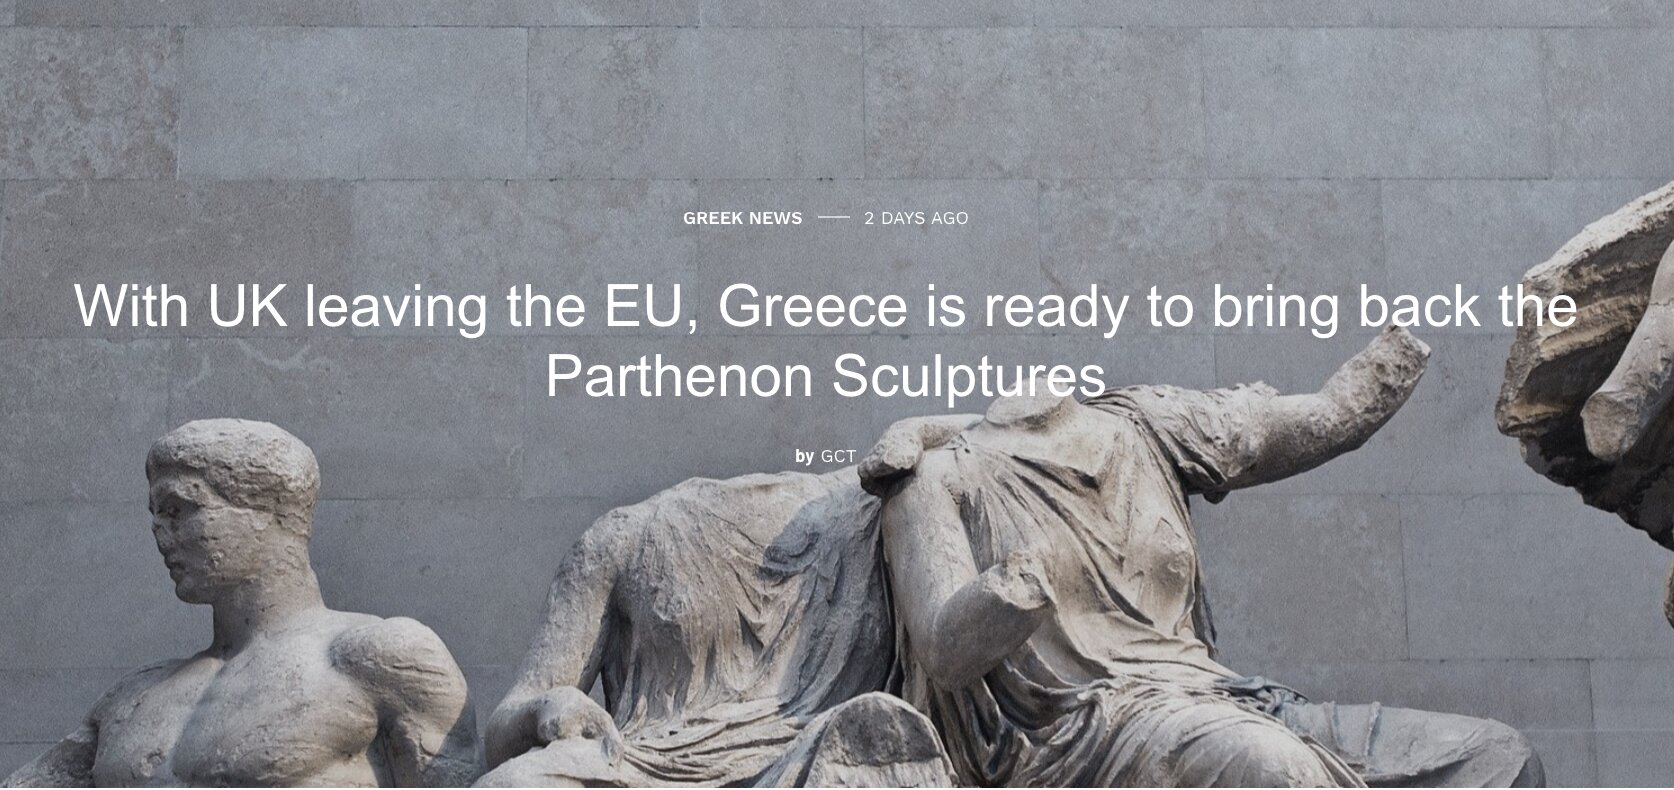 With UK leaving the EU, Greece is ready to bring back the Parthenon Sculptures